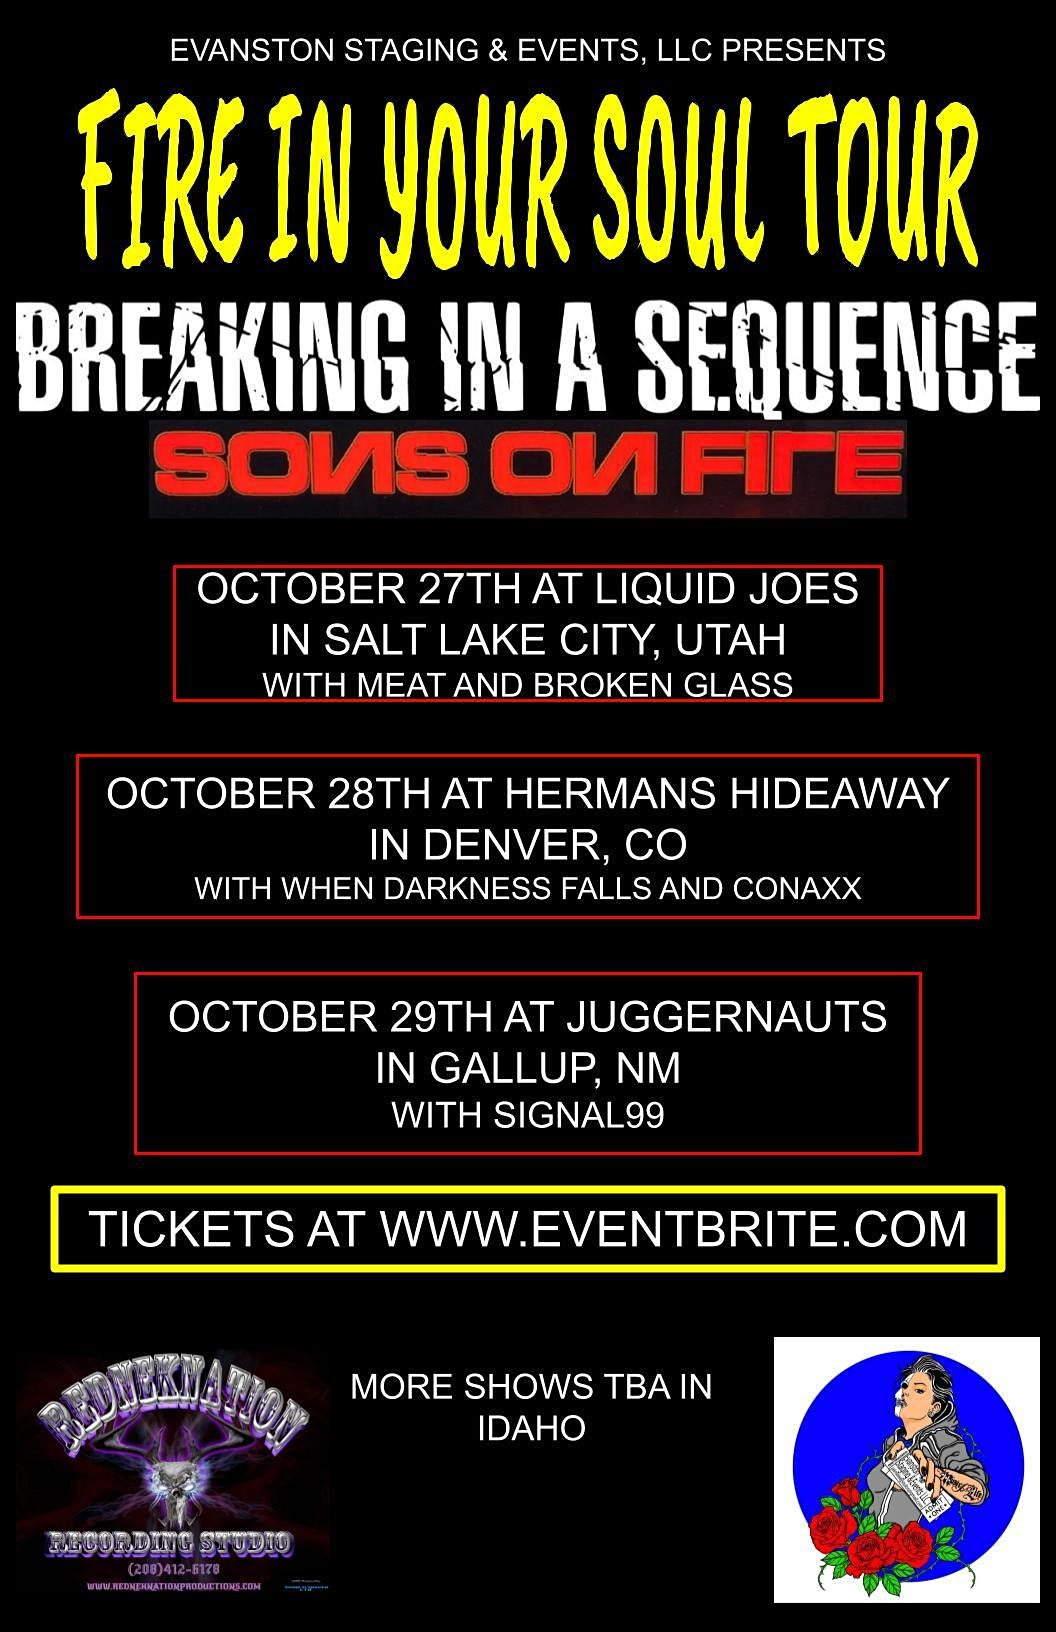 BREAKING IN A SEQUENCE | SONS ON FIRE | WHEN DARKNESS FALLS | CONAXX